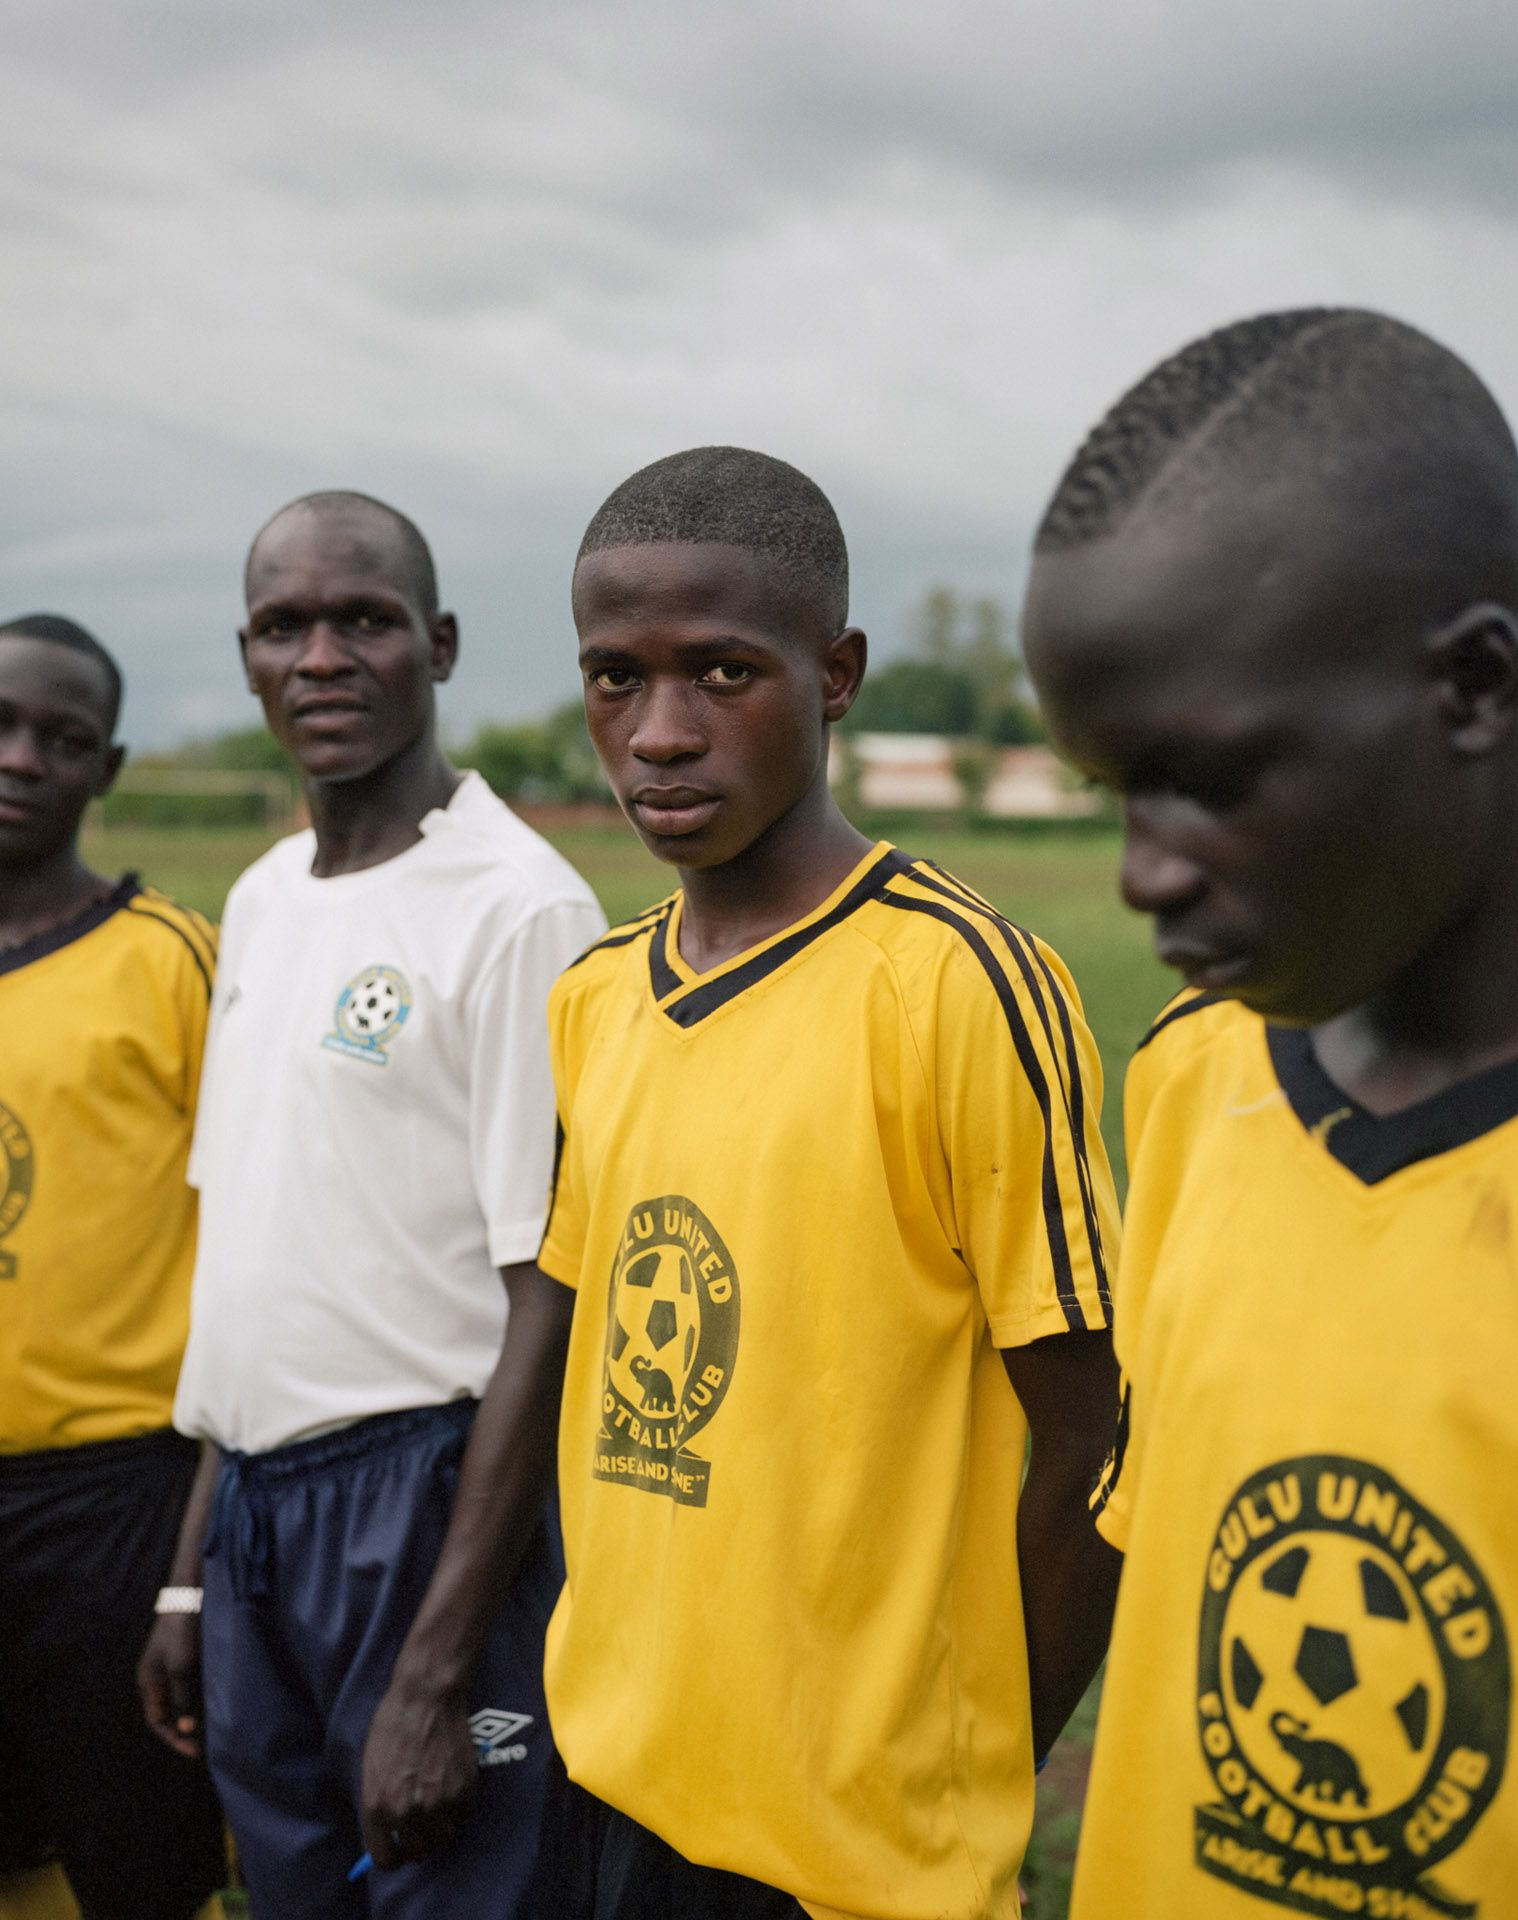 young black boys playing soccer for United Football Club by Alexi Hobbs in Uganda for Football for Good with Sportsnet